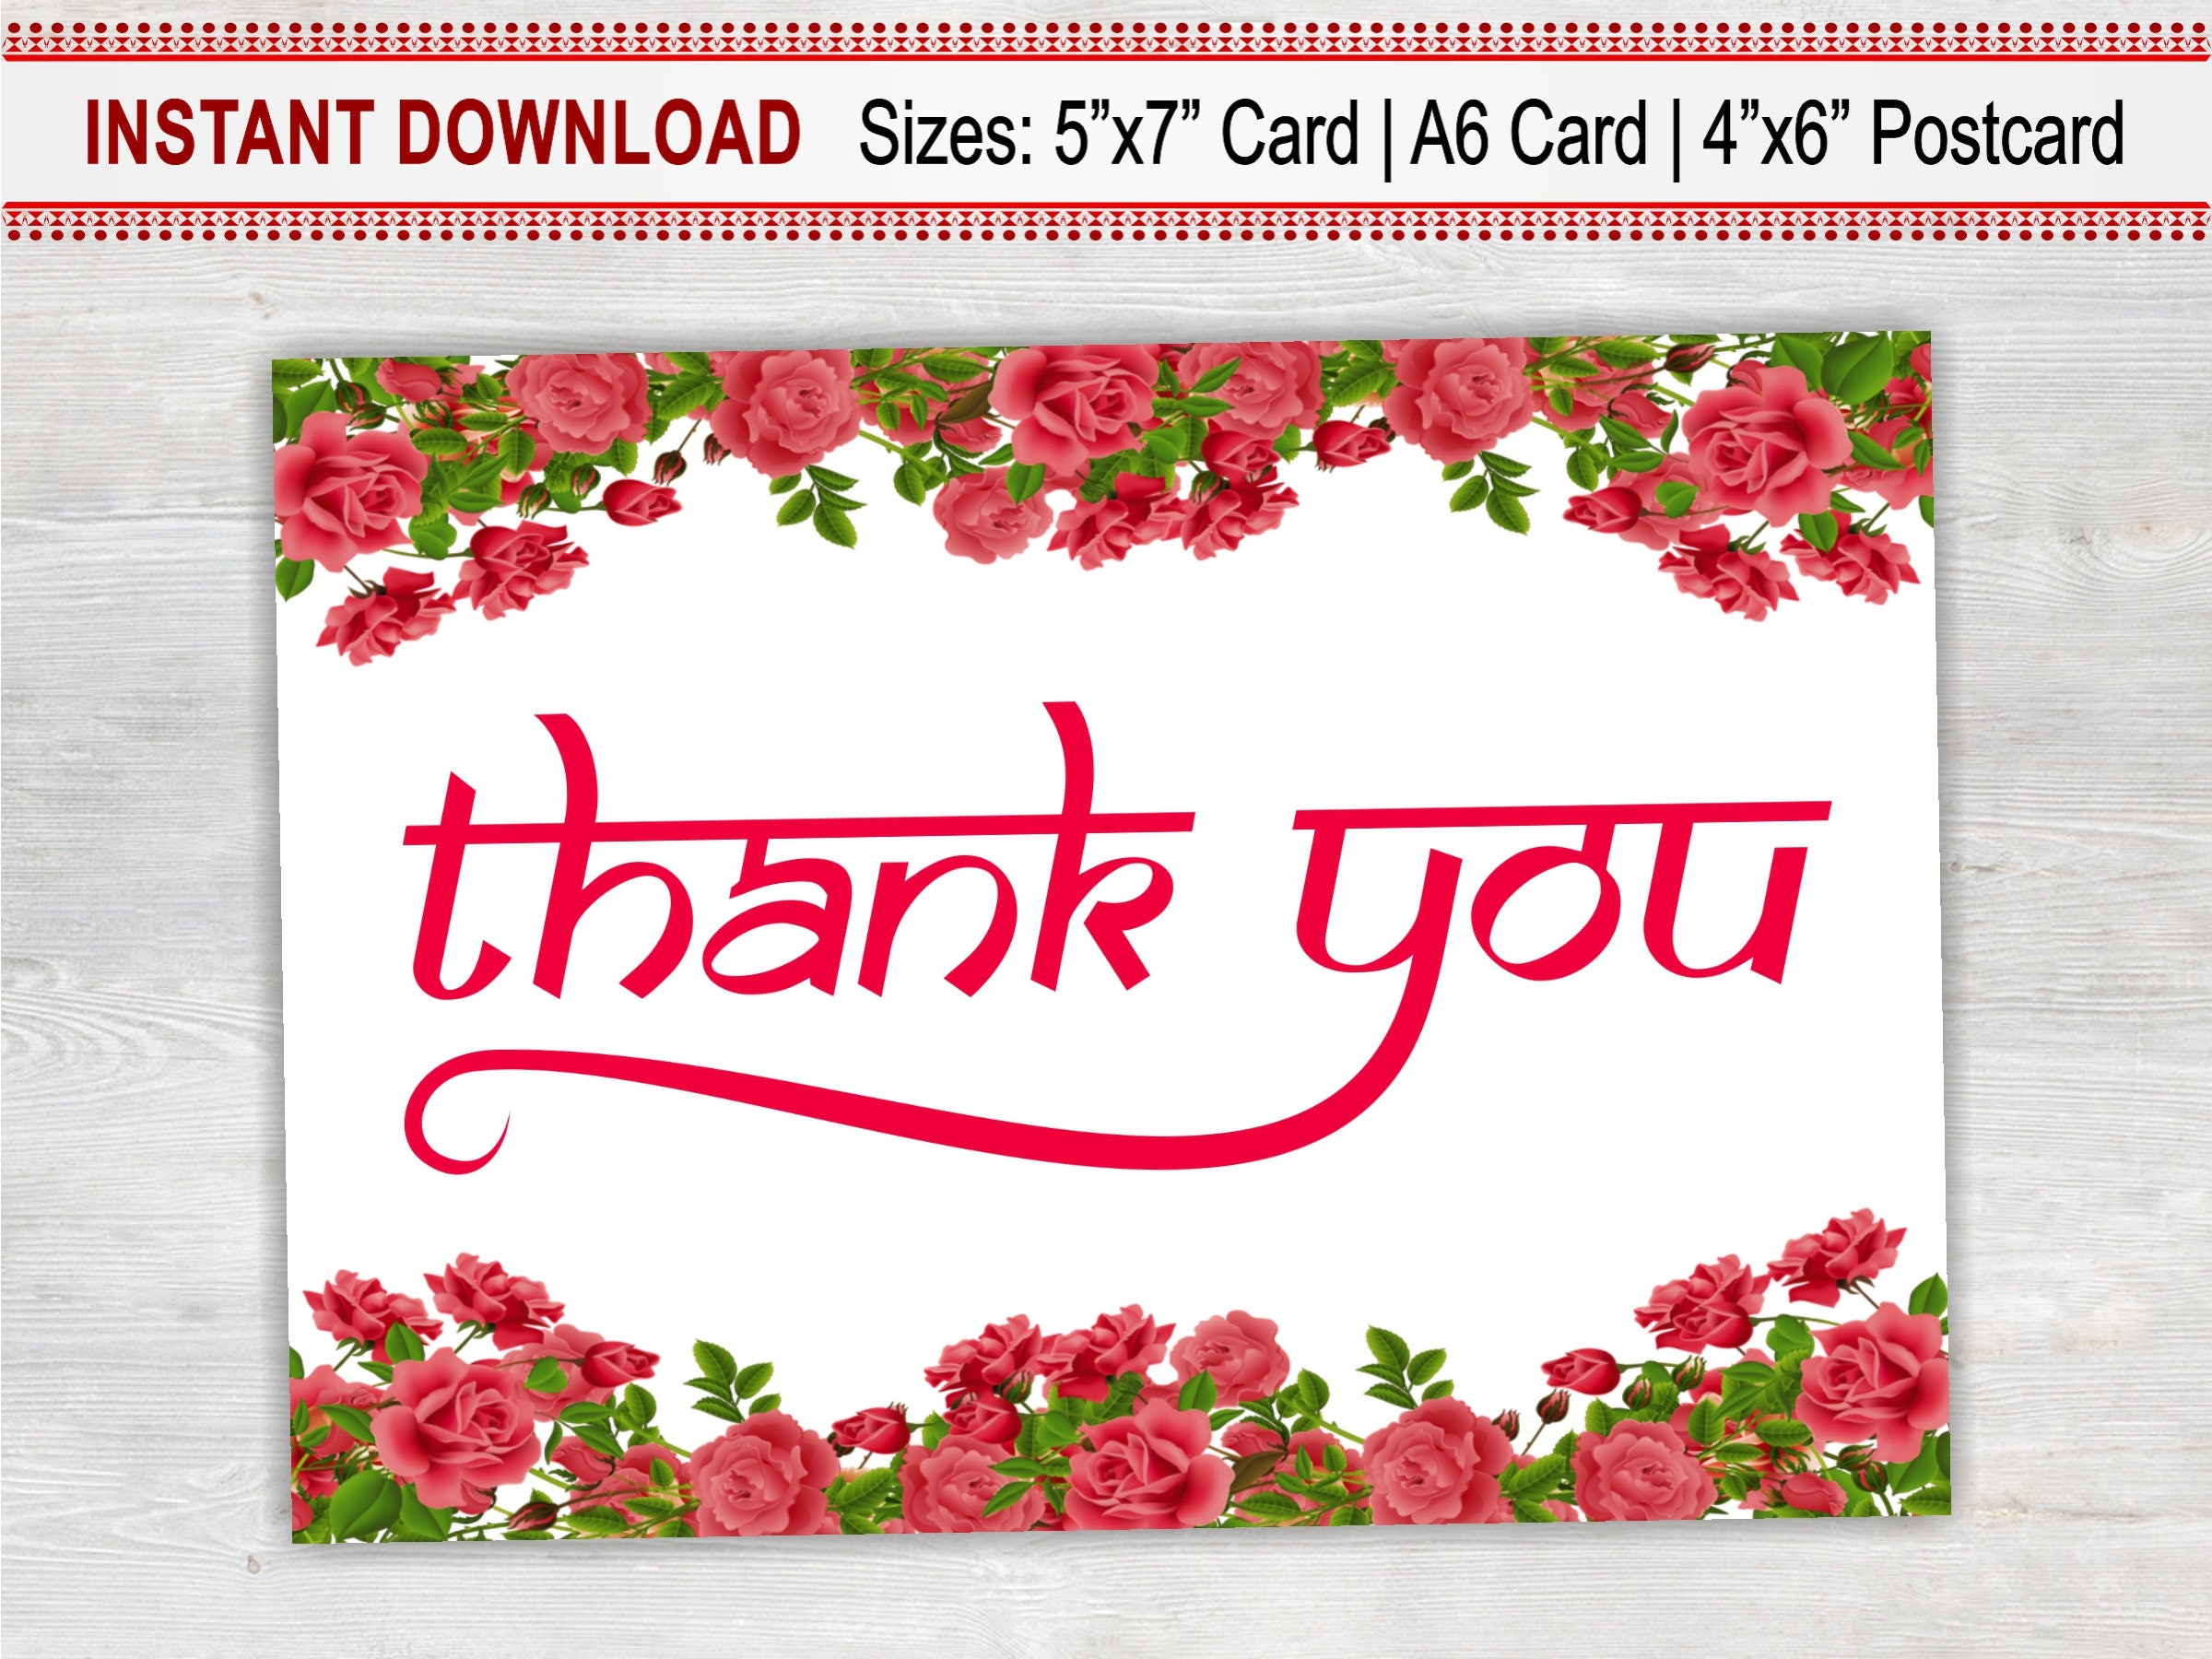 Thank you card printable floral card thank you boss bridesmaid thank you card printable floral card thank you boss bridesmaid flower girl izmirmasajfo